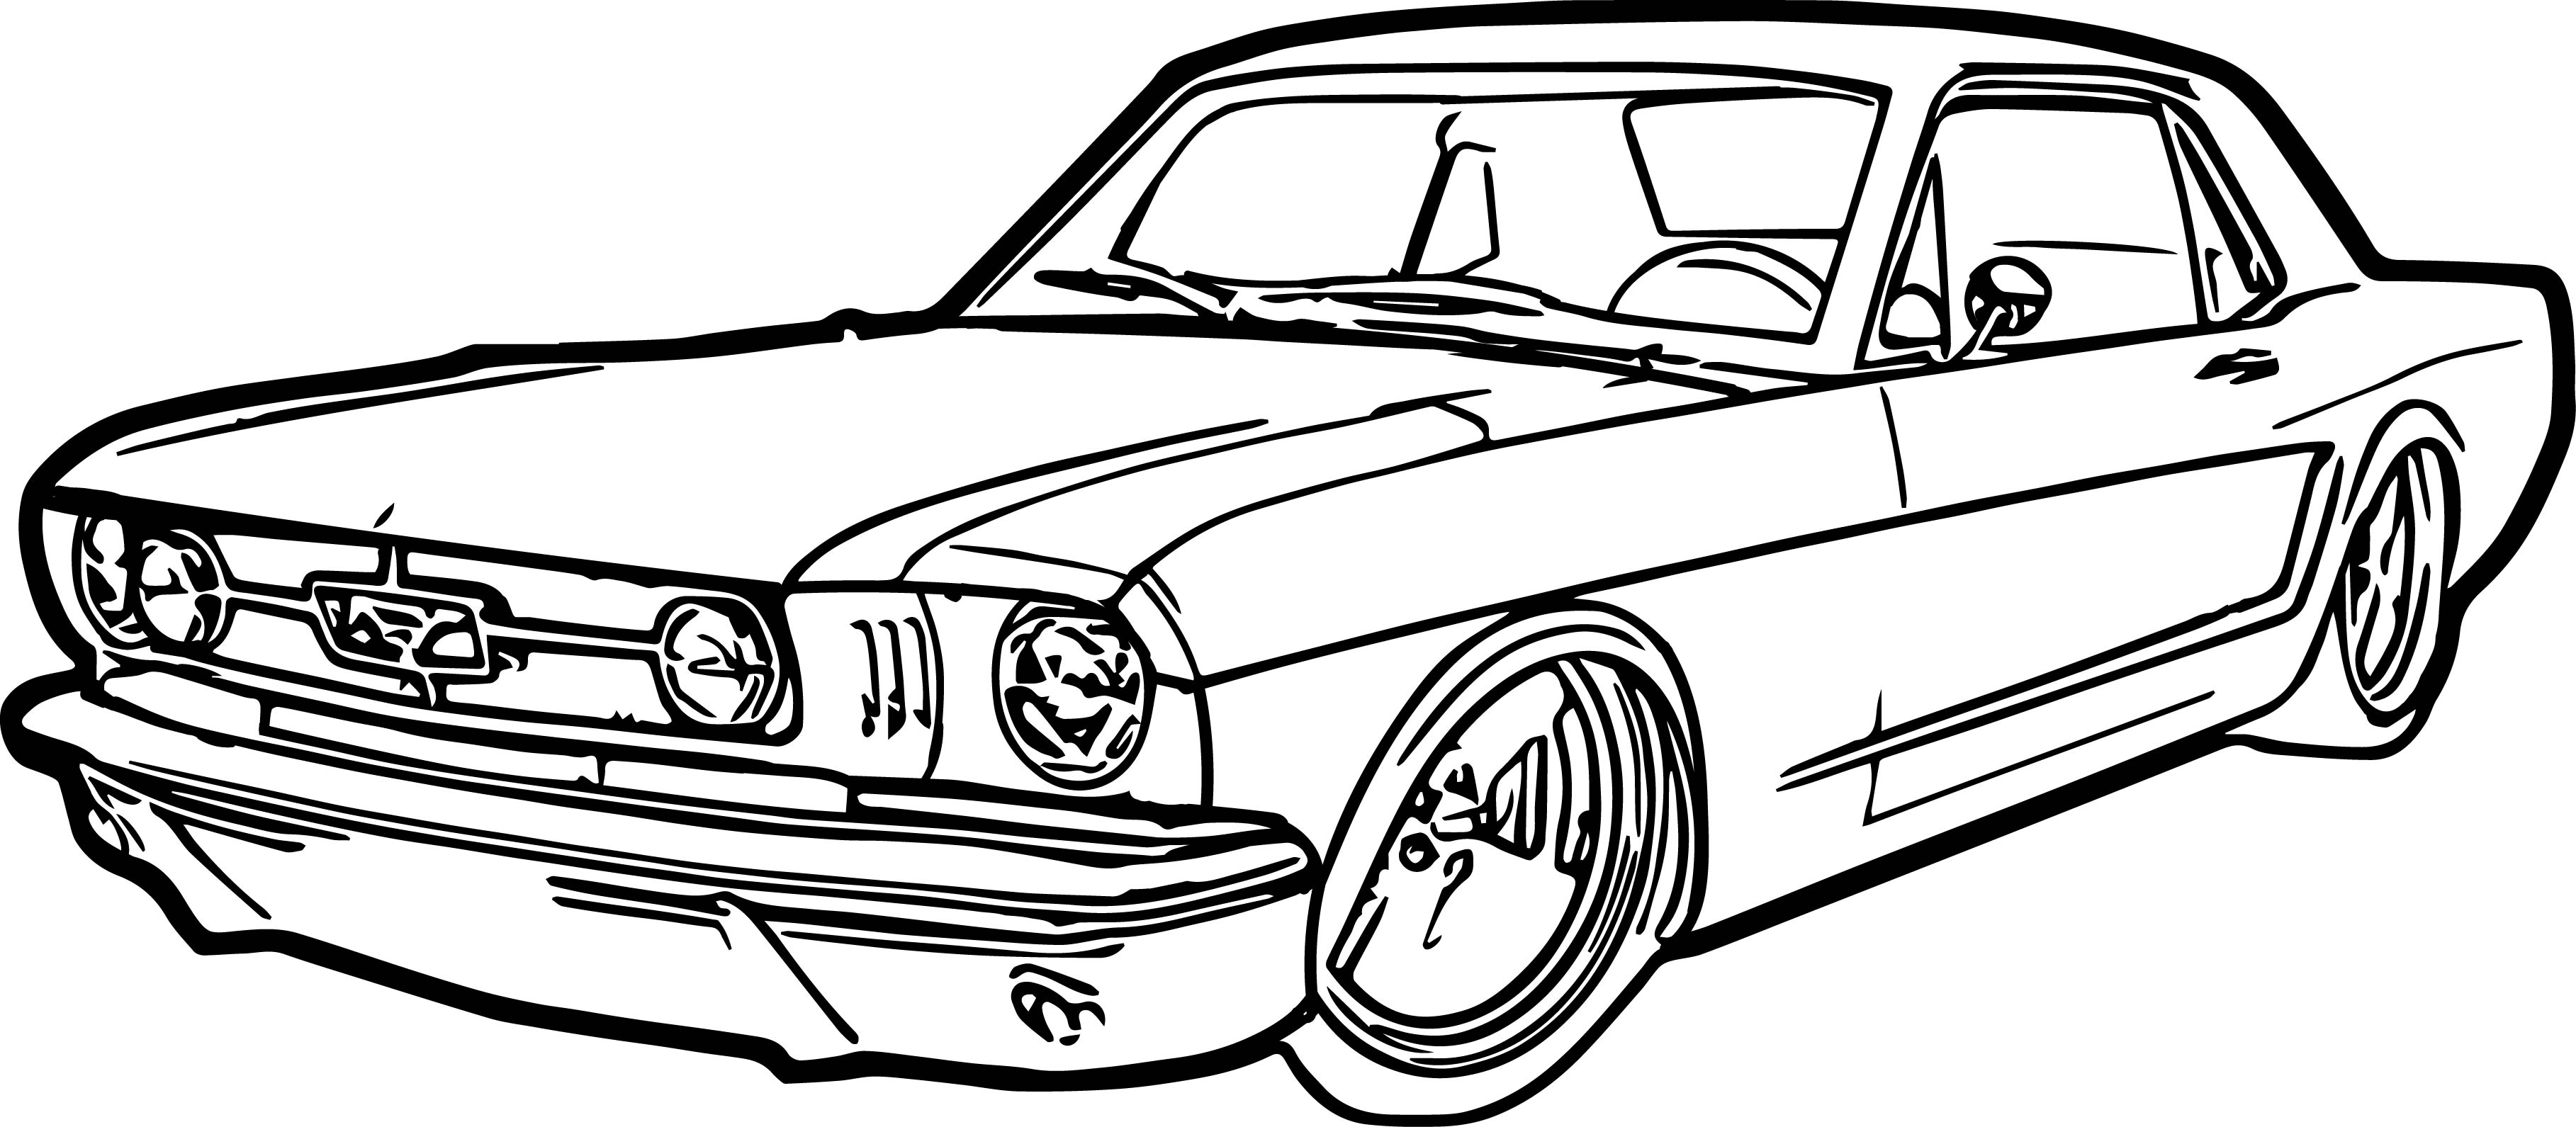 3635x1591 Cars Coloring Pages Ford Mustang Car Coloring Page Wecoloringpage